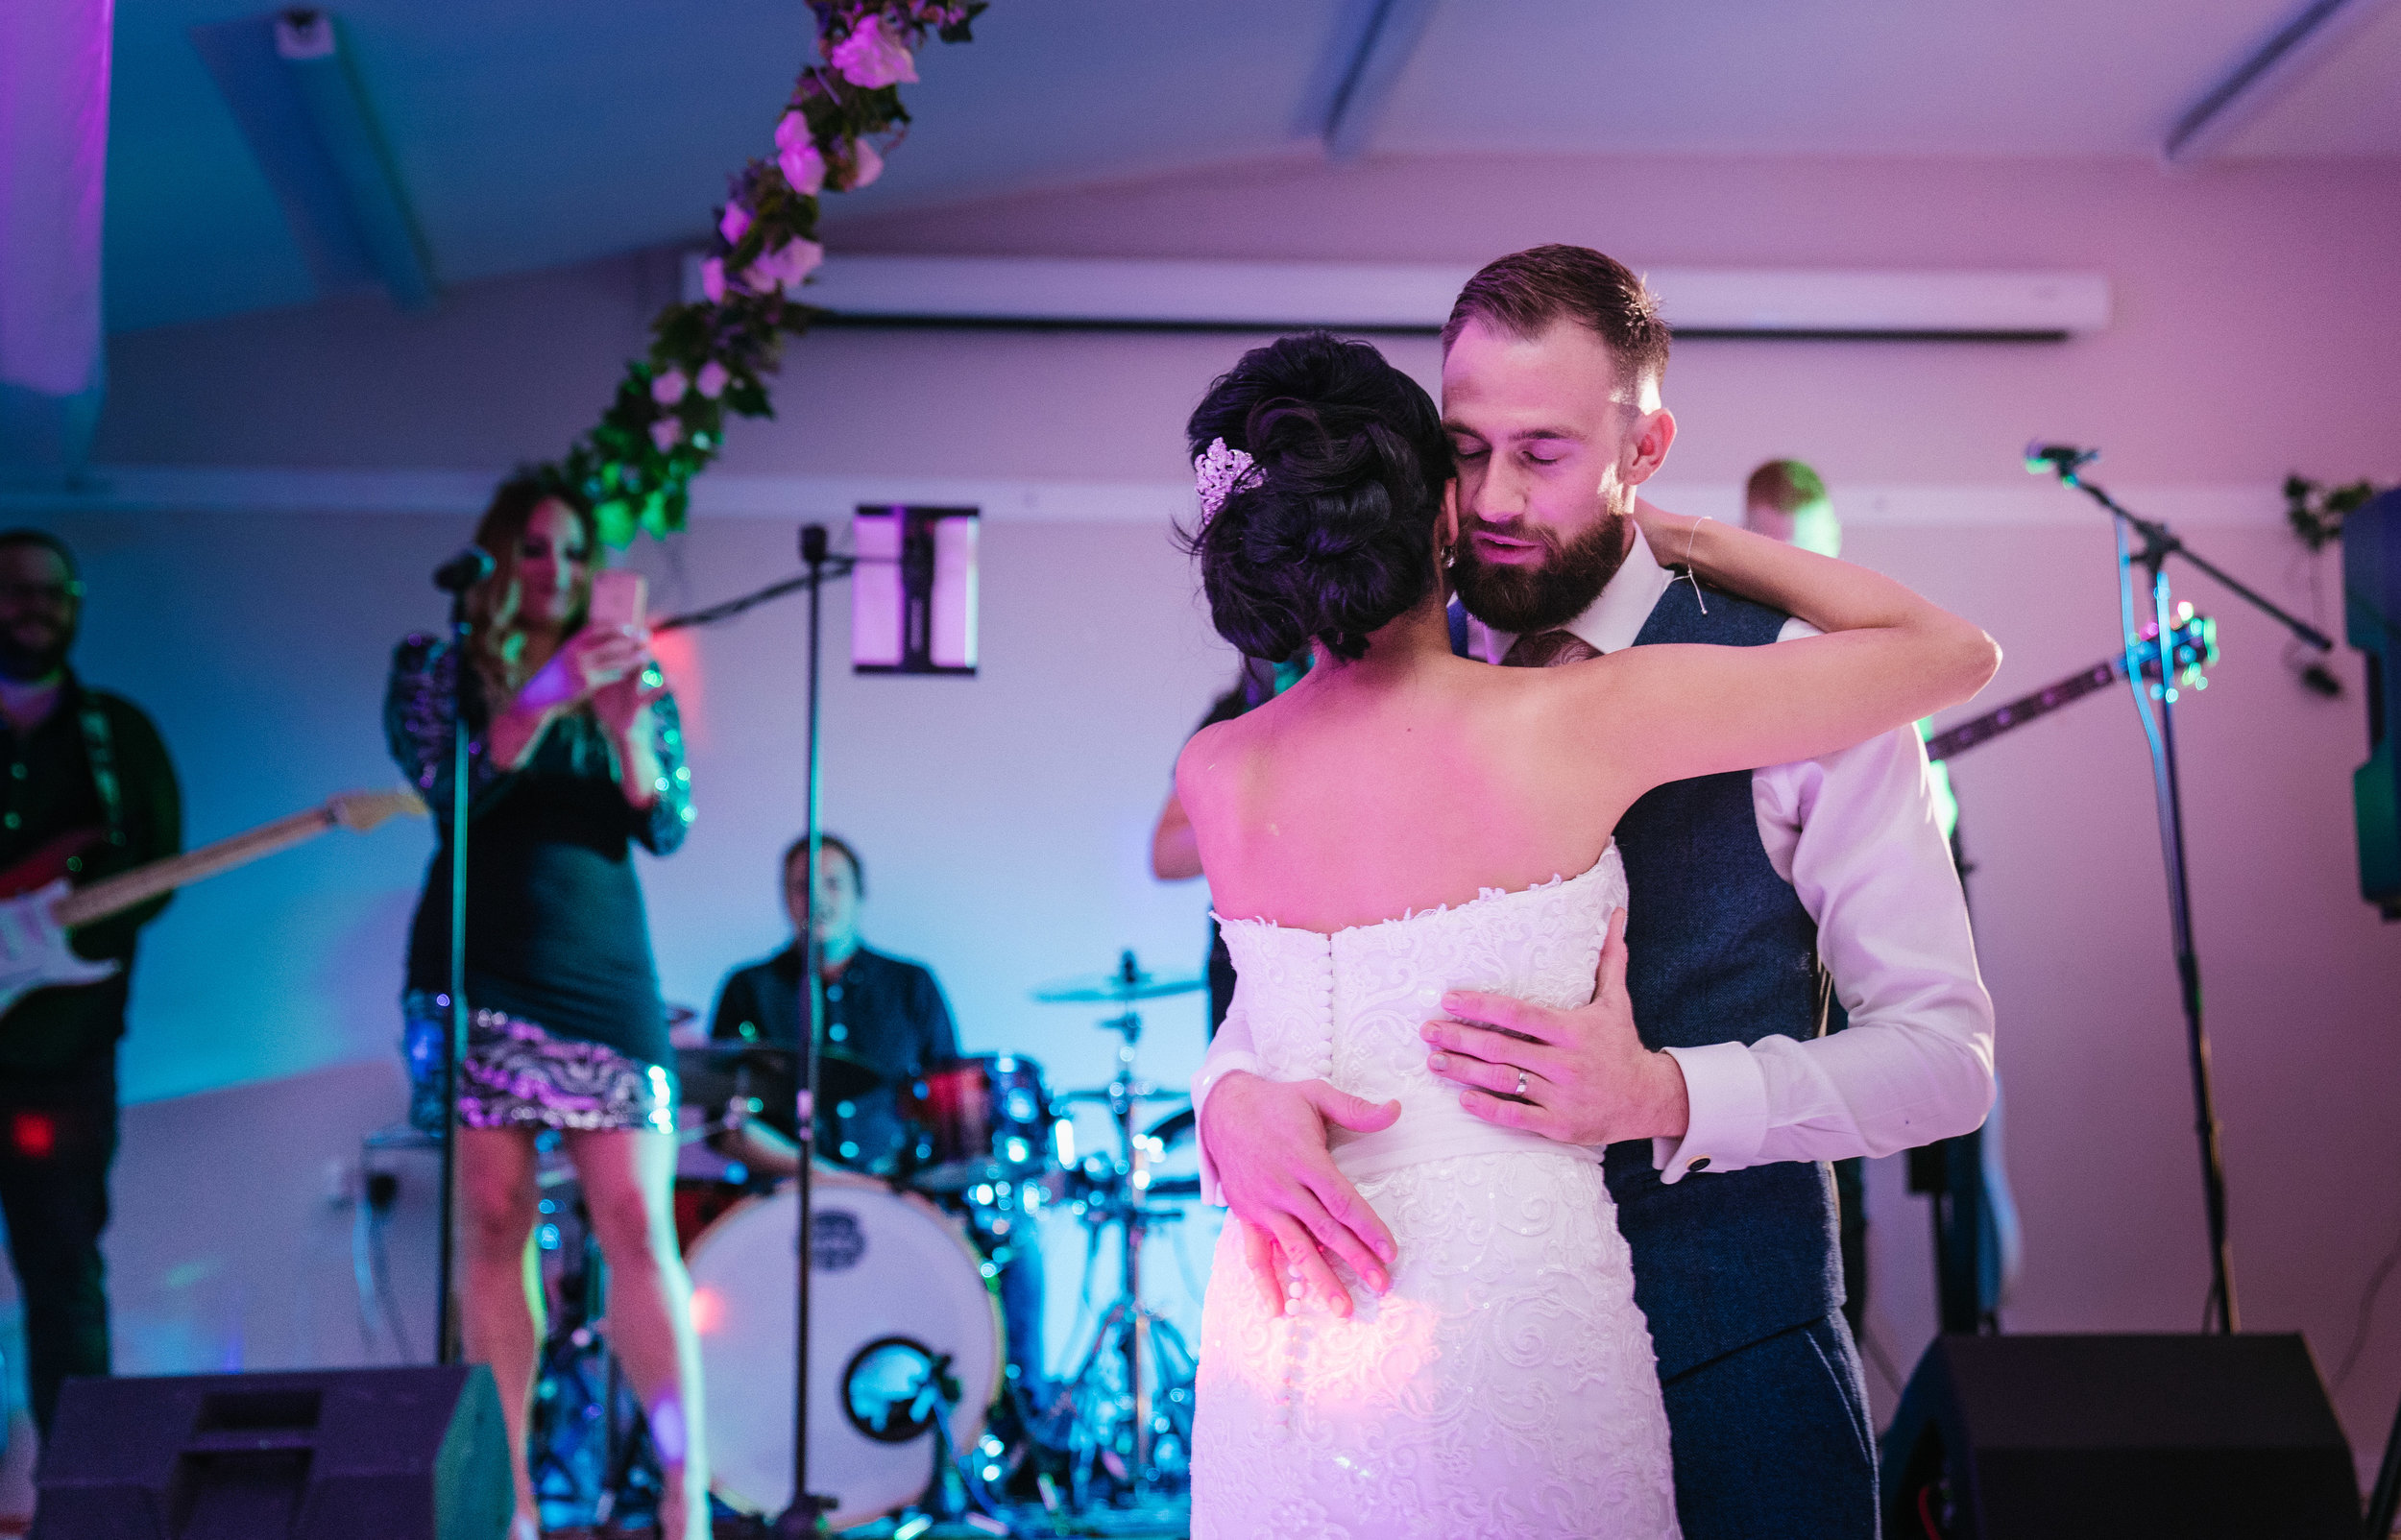 bedfordshire-london-wedding-photographer-videographer-67